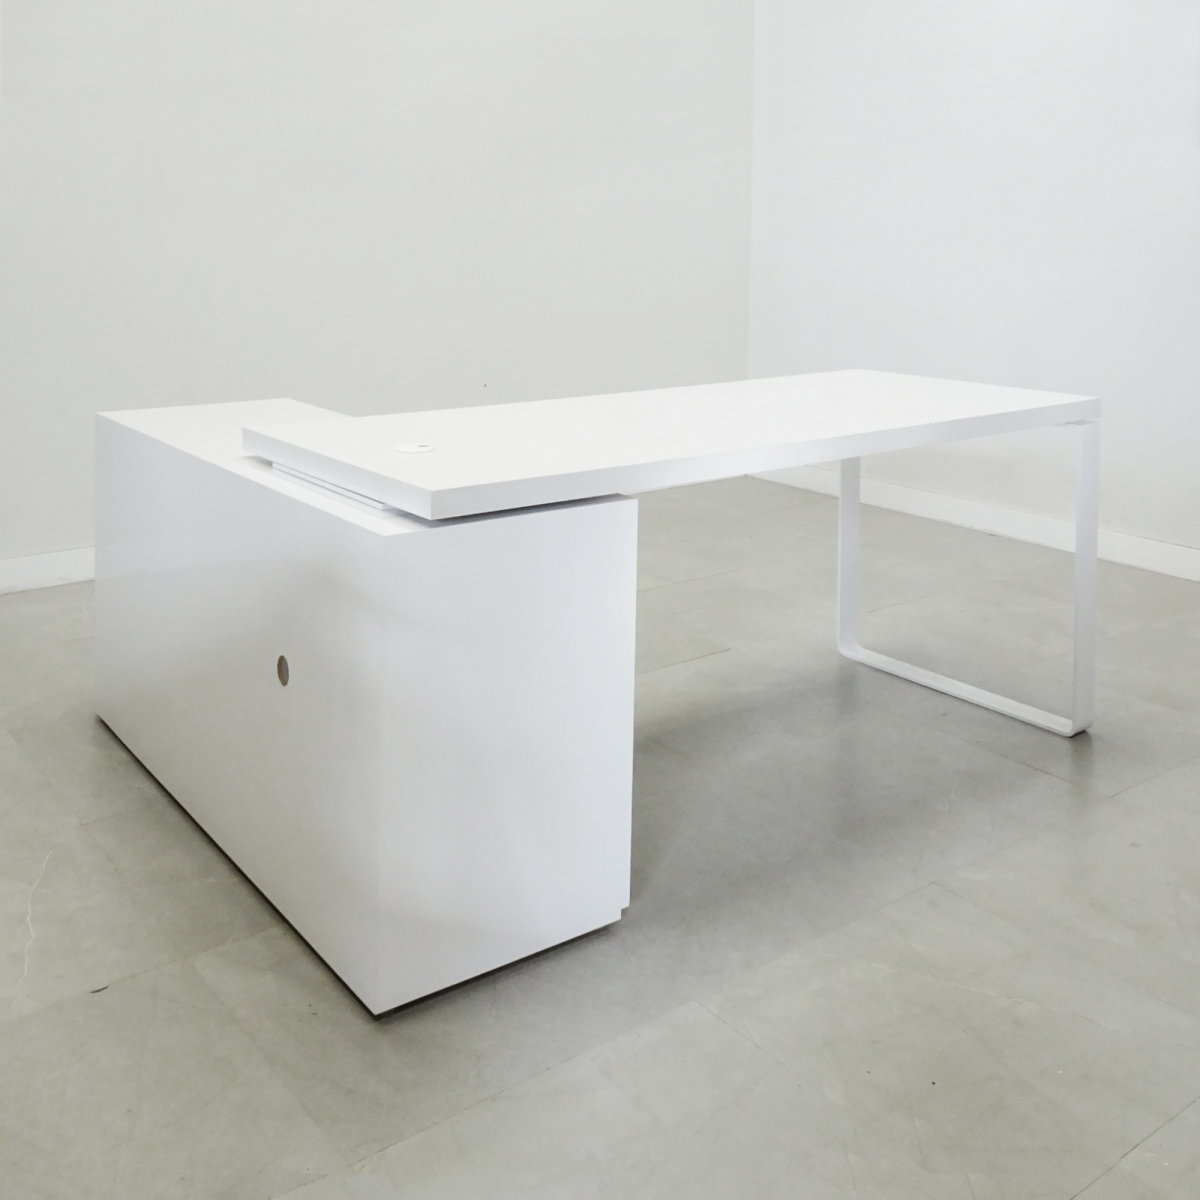 Aspen Laminate Desk with Credenza